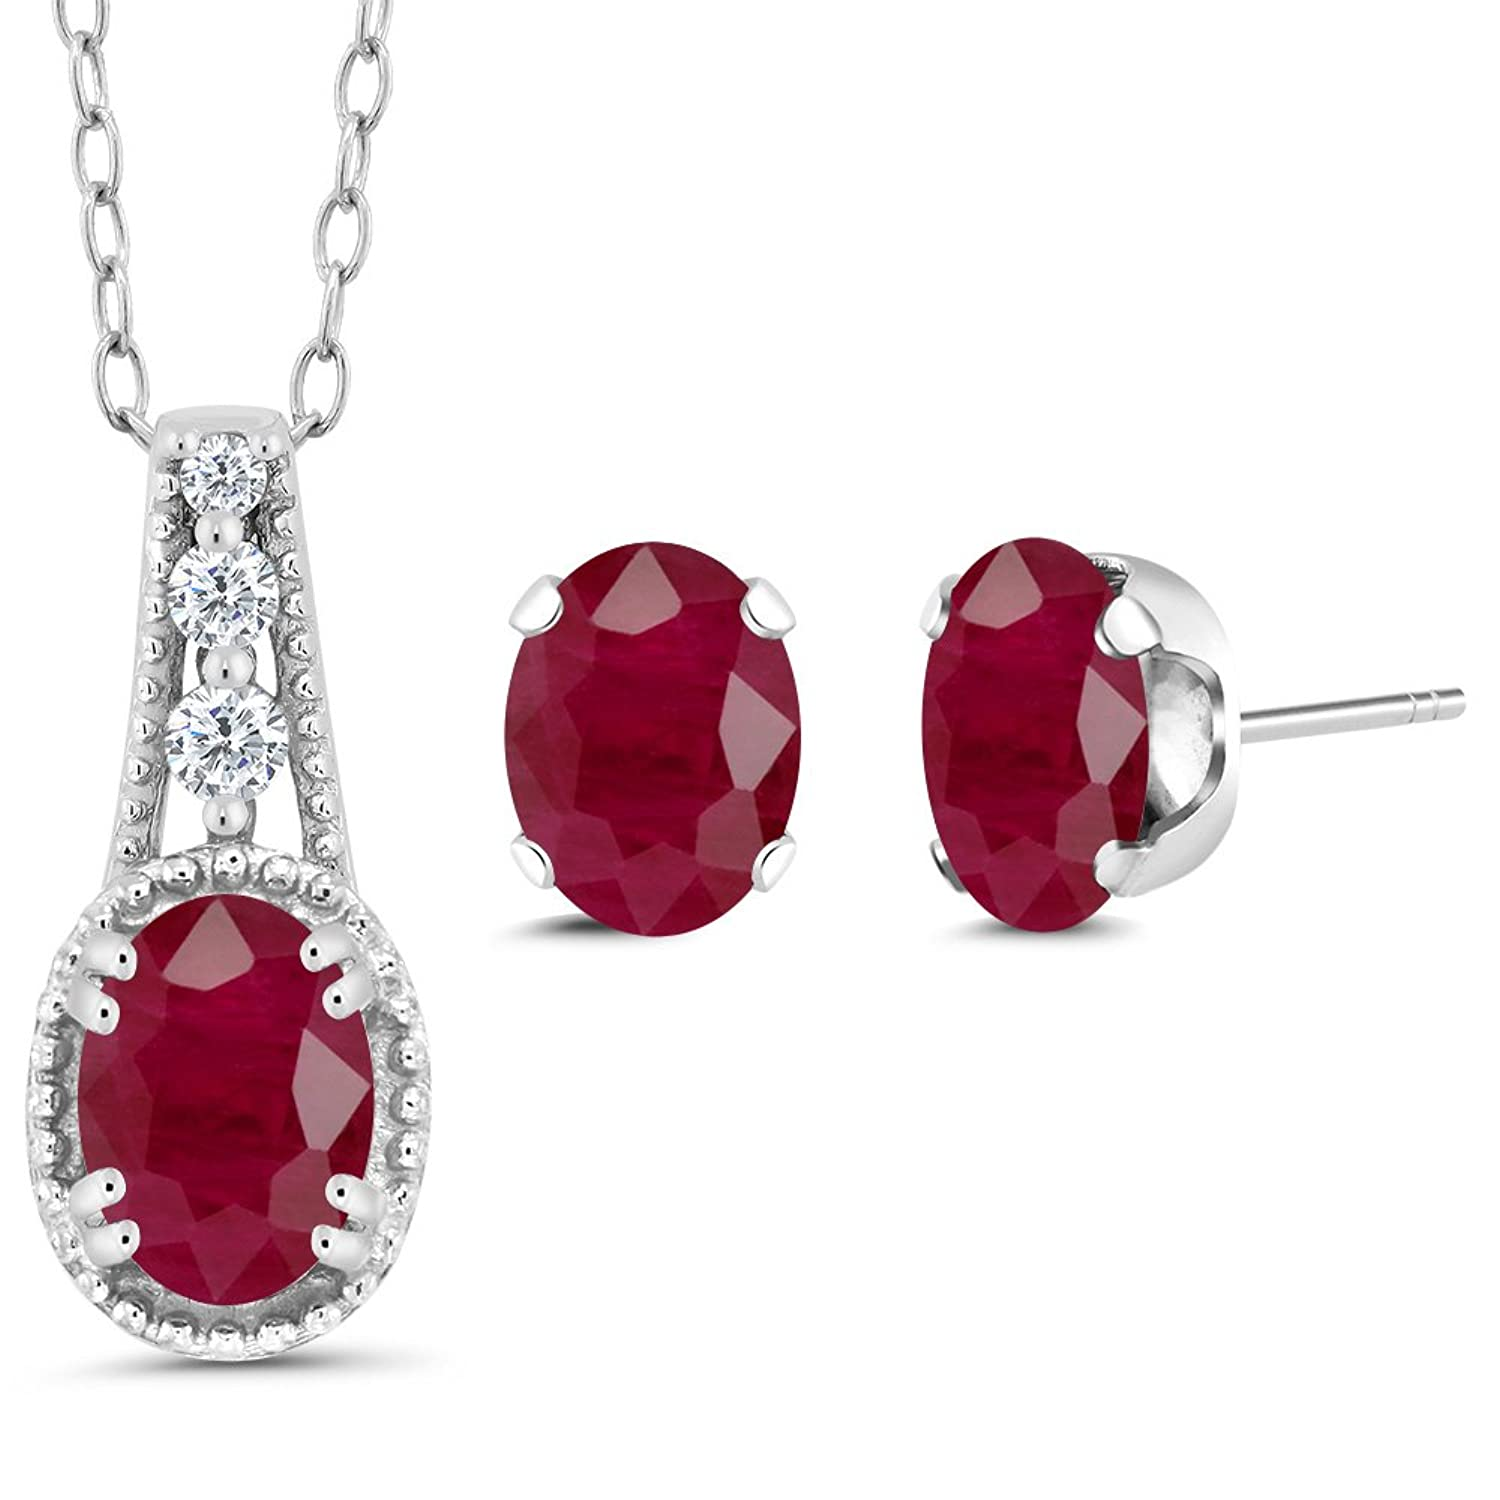 1.88 Ct Oval Red Ruby 14K White Gold Pendant Earrings Set